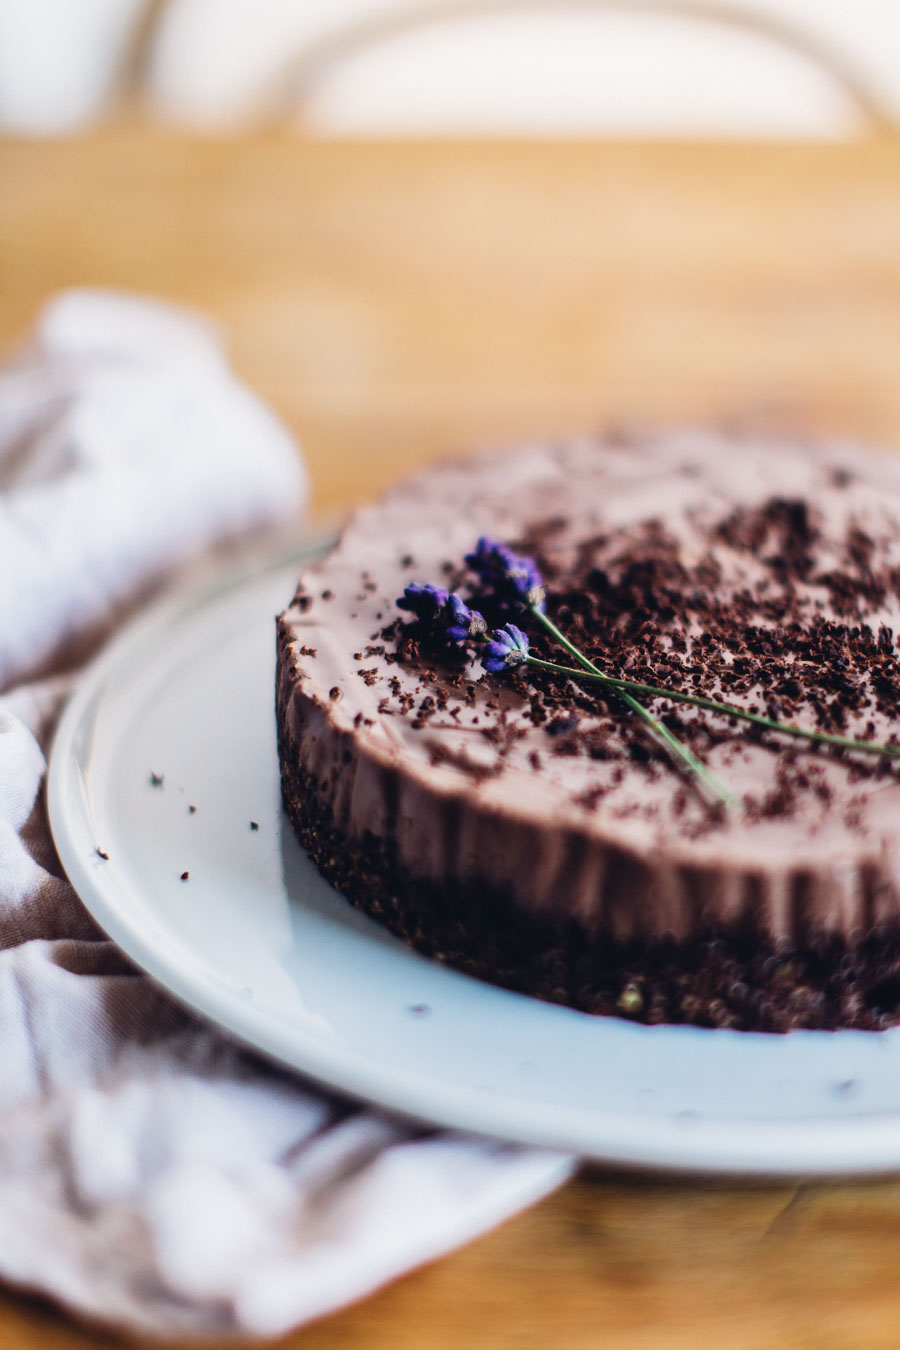 Earl grey and lavender vegan cheesecake